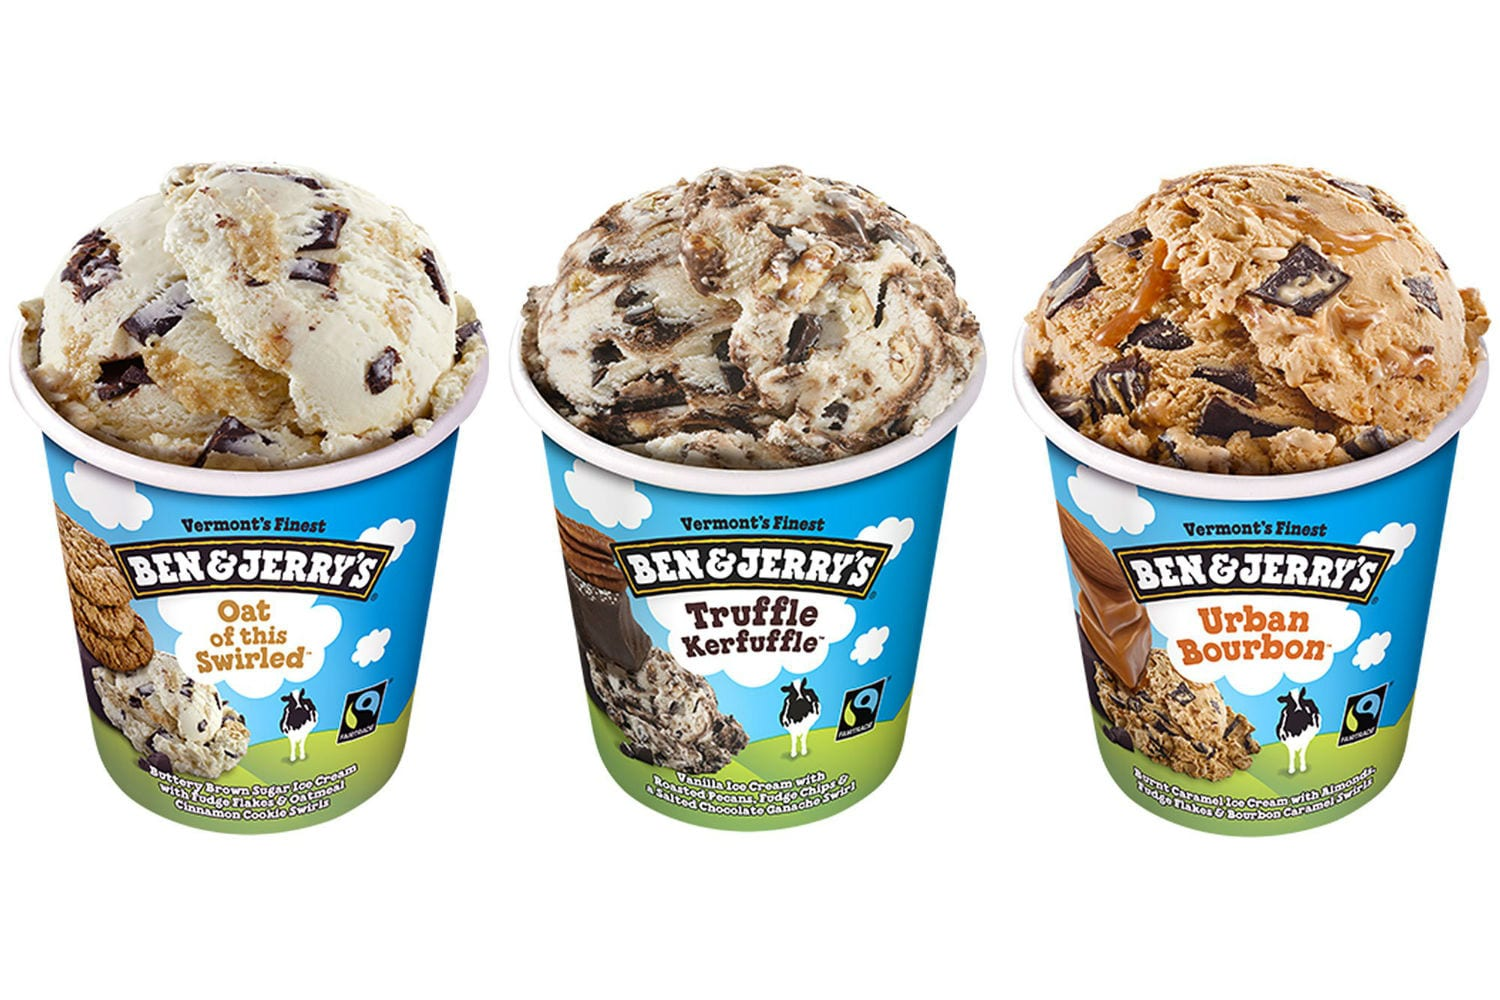 The Complete List Of Ben & Jerry's Flavors